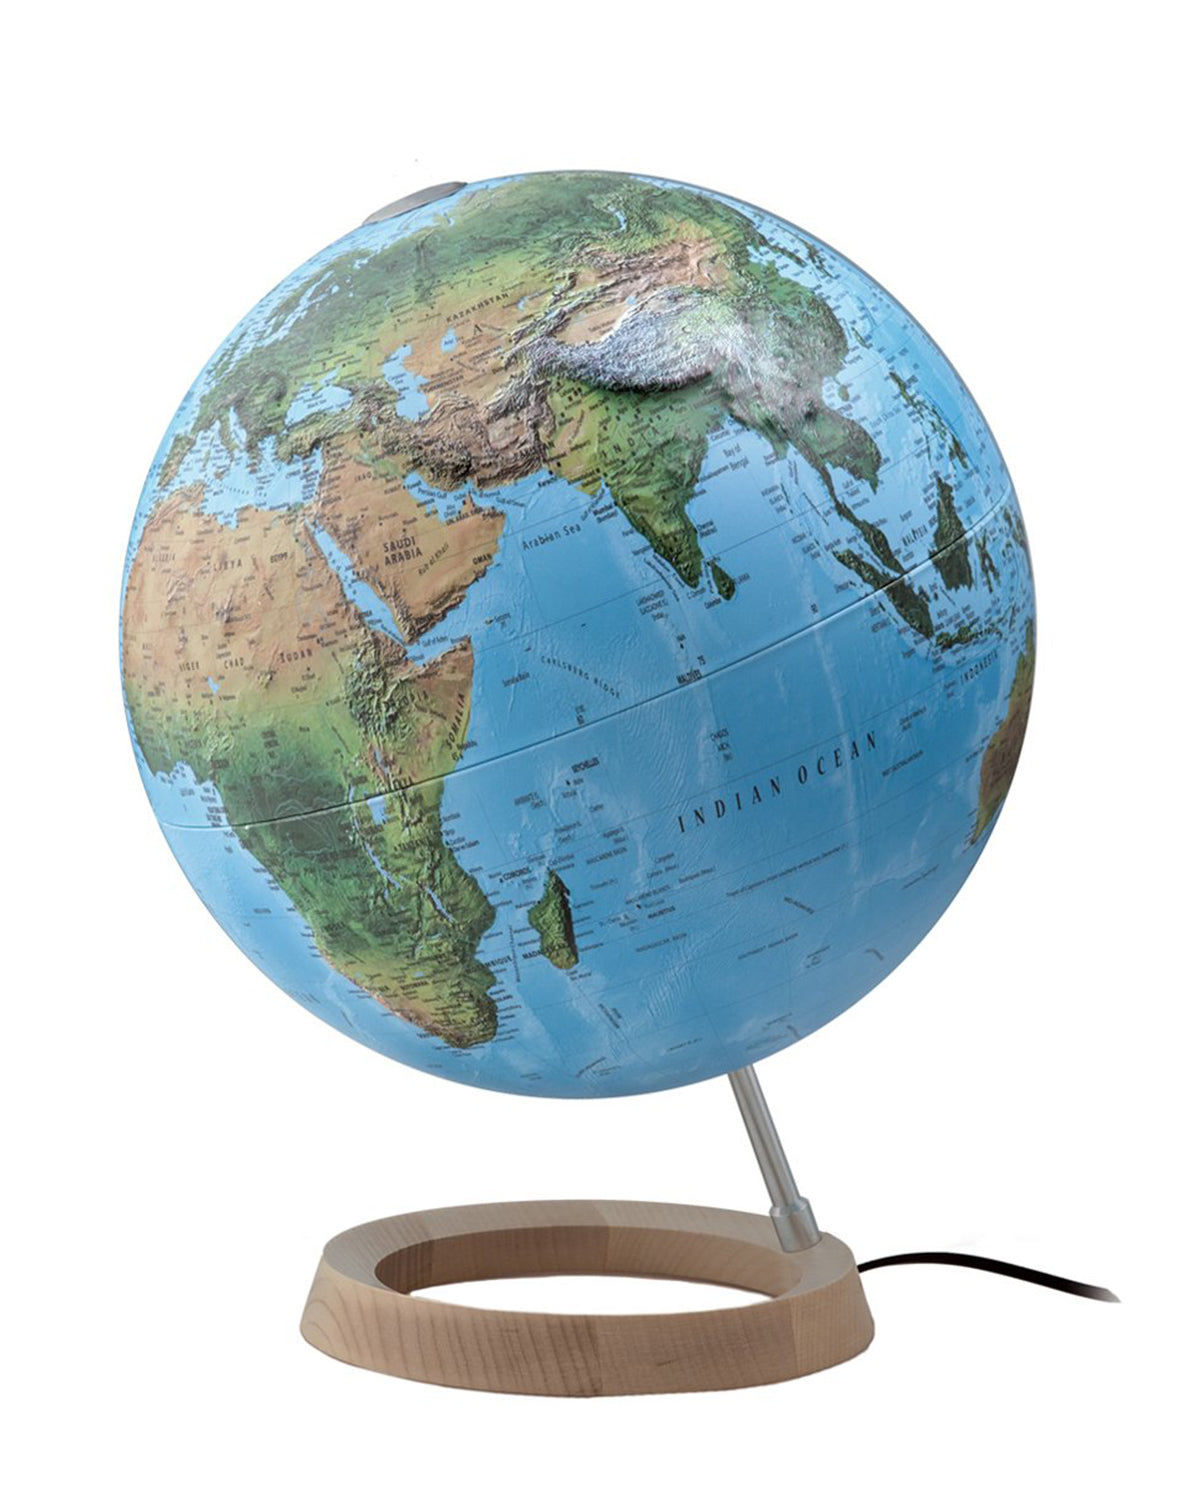 World globes with free shipping australia wide mapworld full circle fc4 relief atmosphere illuminated 30cm globe gumiabroncs Images